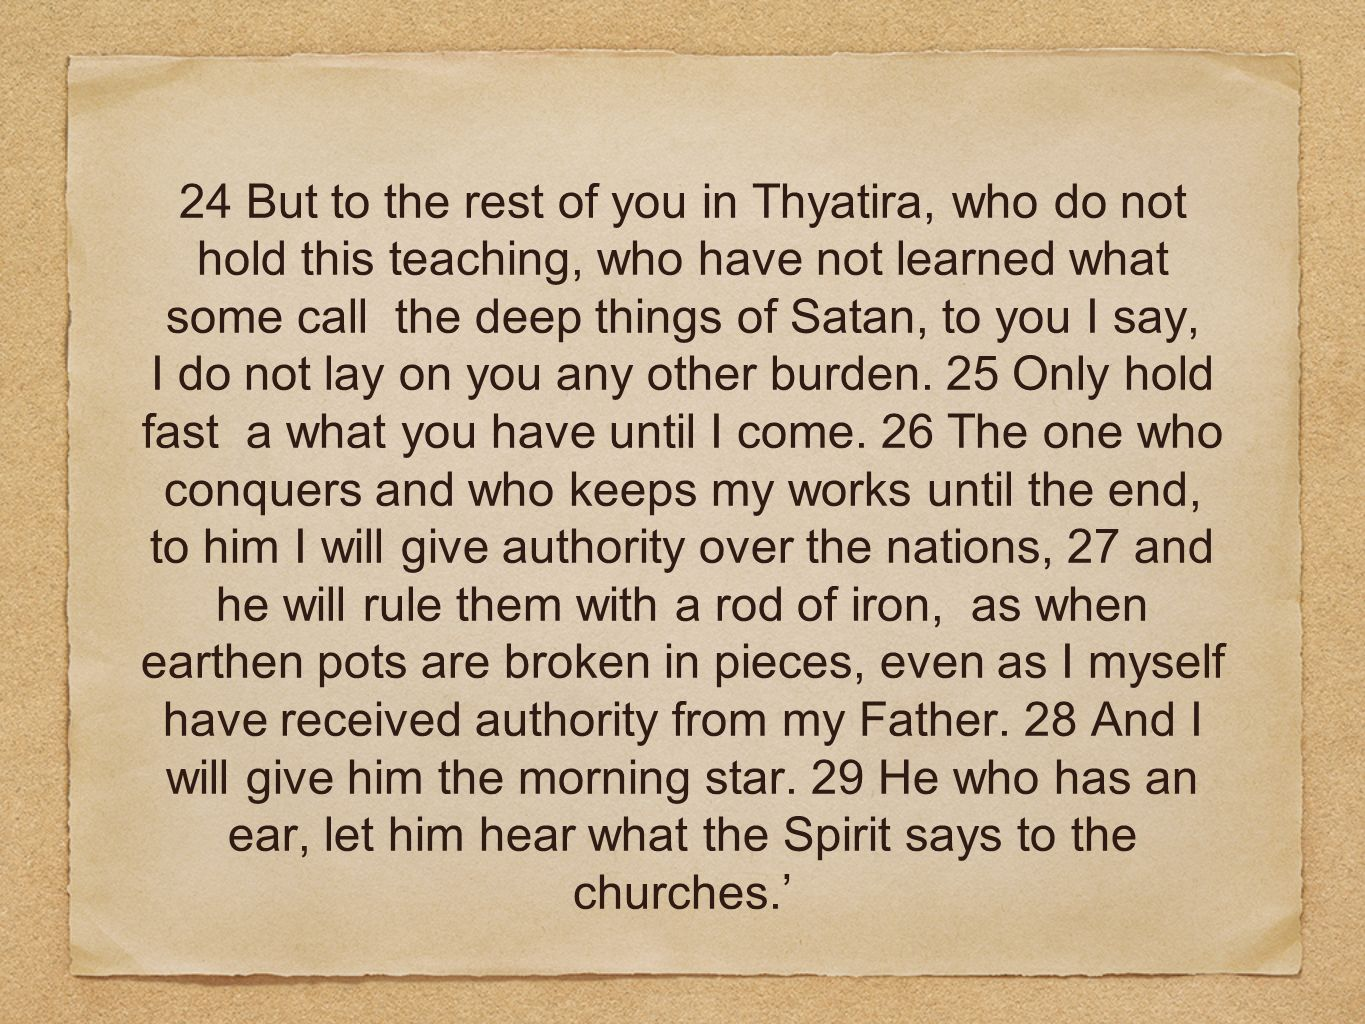 24 But to the rest of you in Thyatira, who do not hold this teaching, who have not learned what some call the deep things of Satan, to you I say, I do